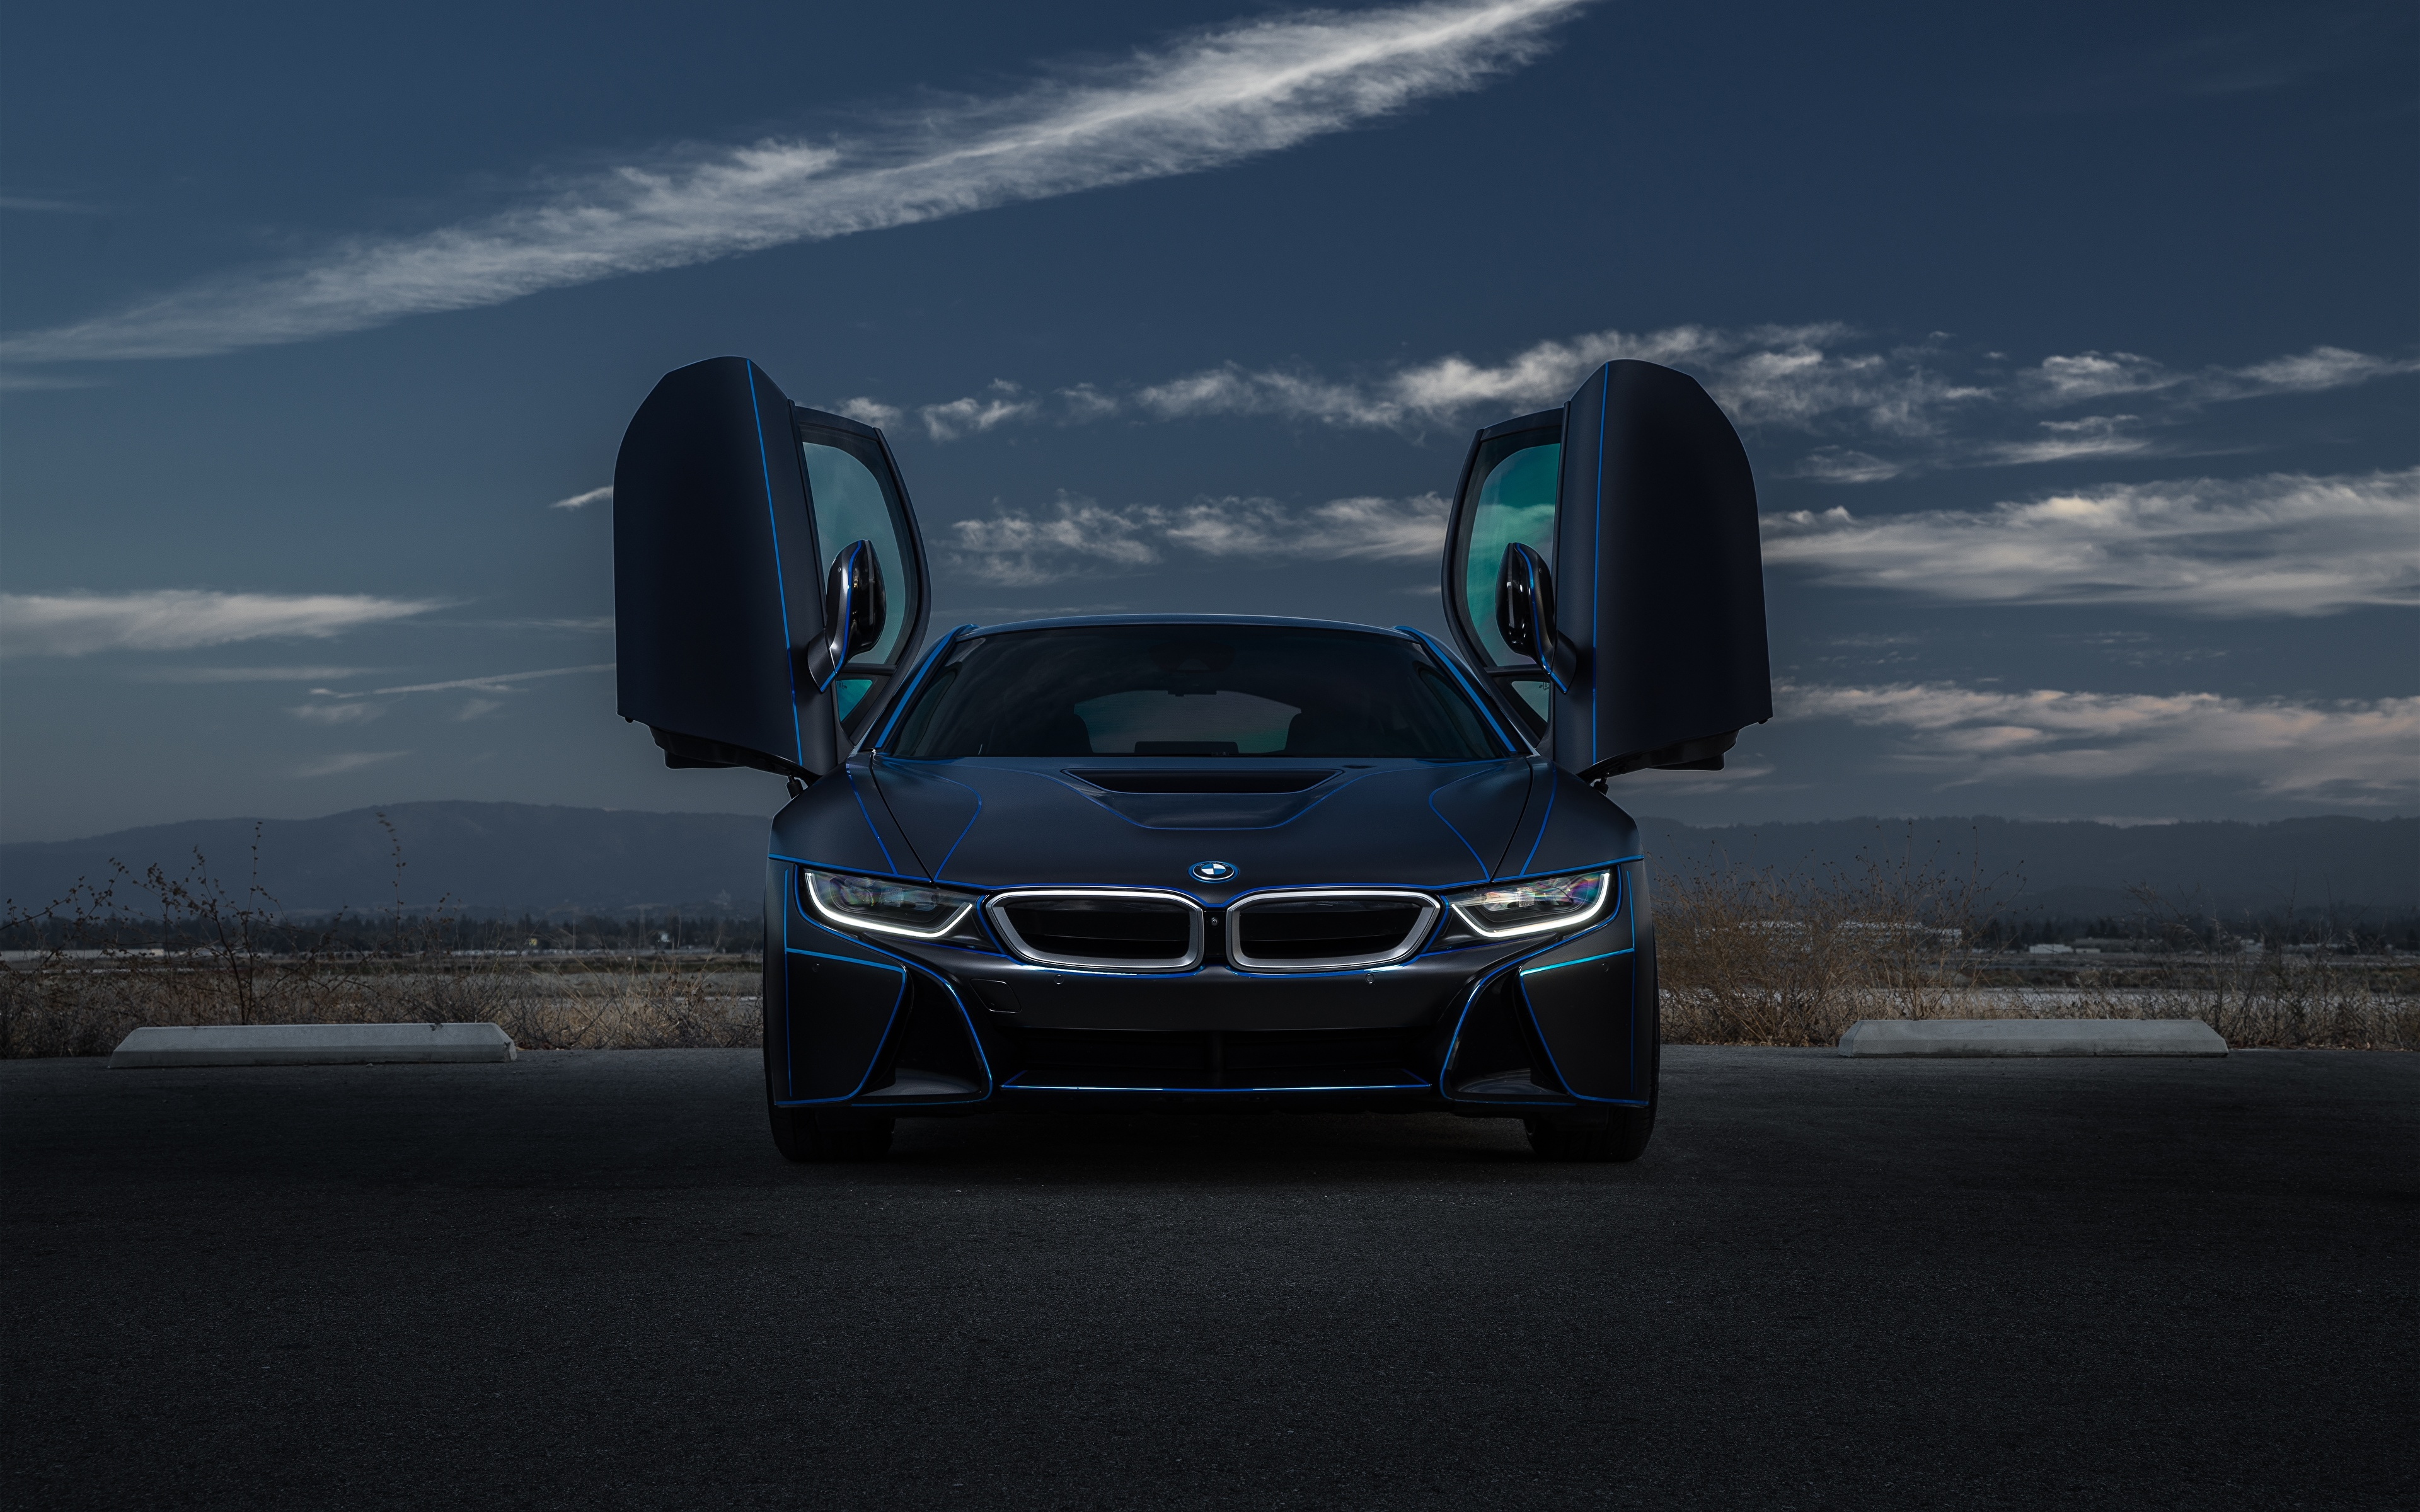 Desktop Wallpapers Bmw I8 Aristo Collection Ss Customs 3840x2400